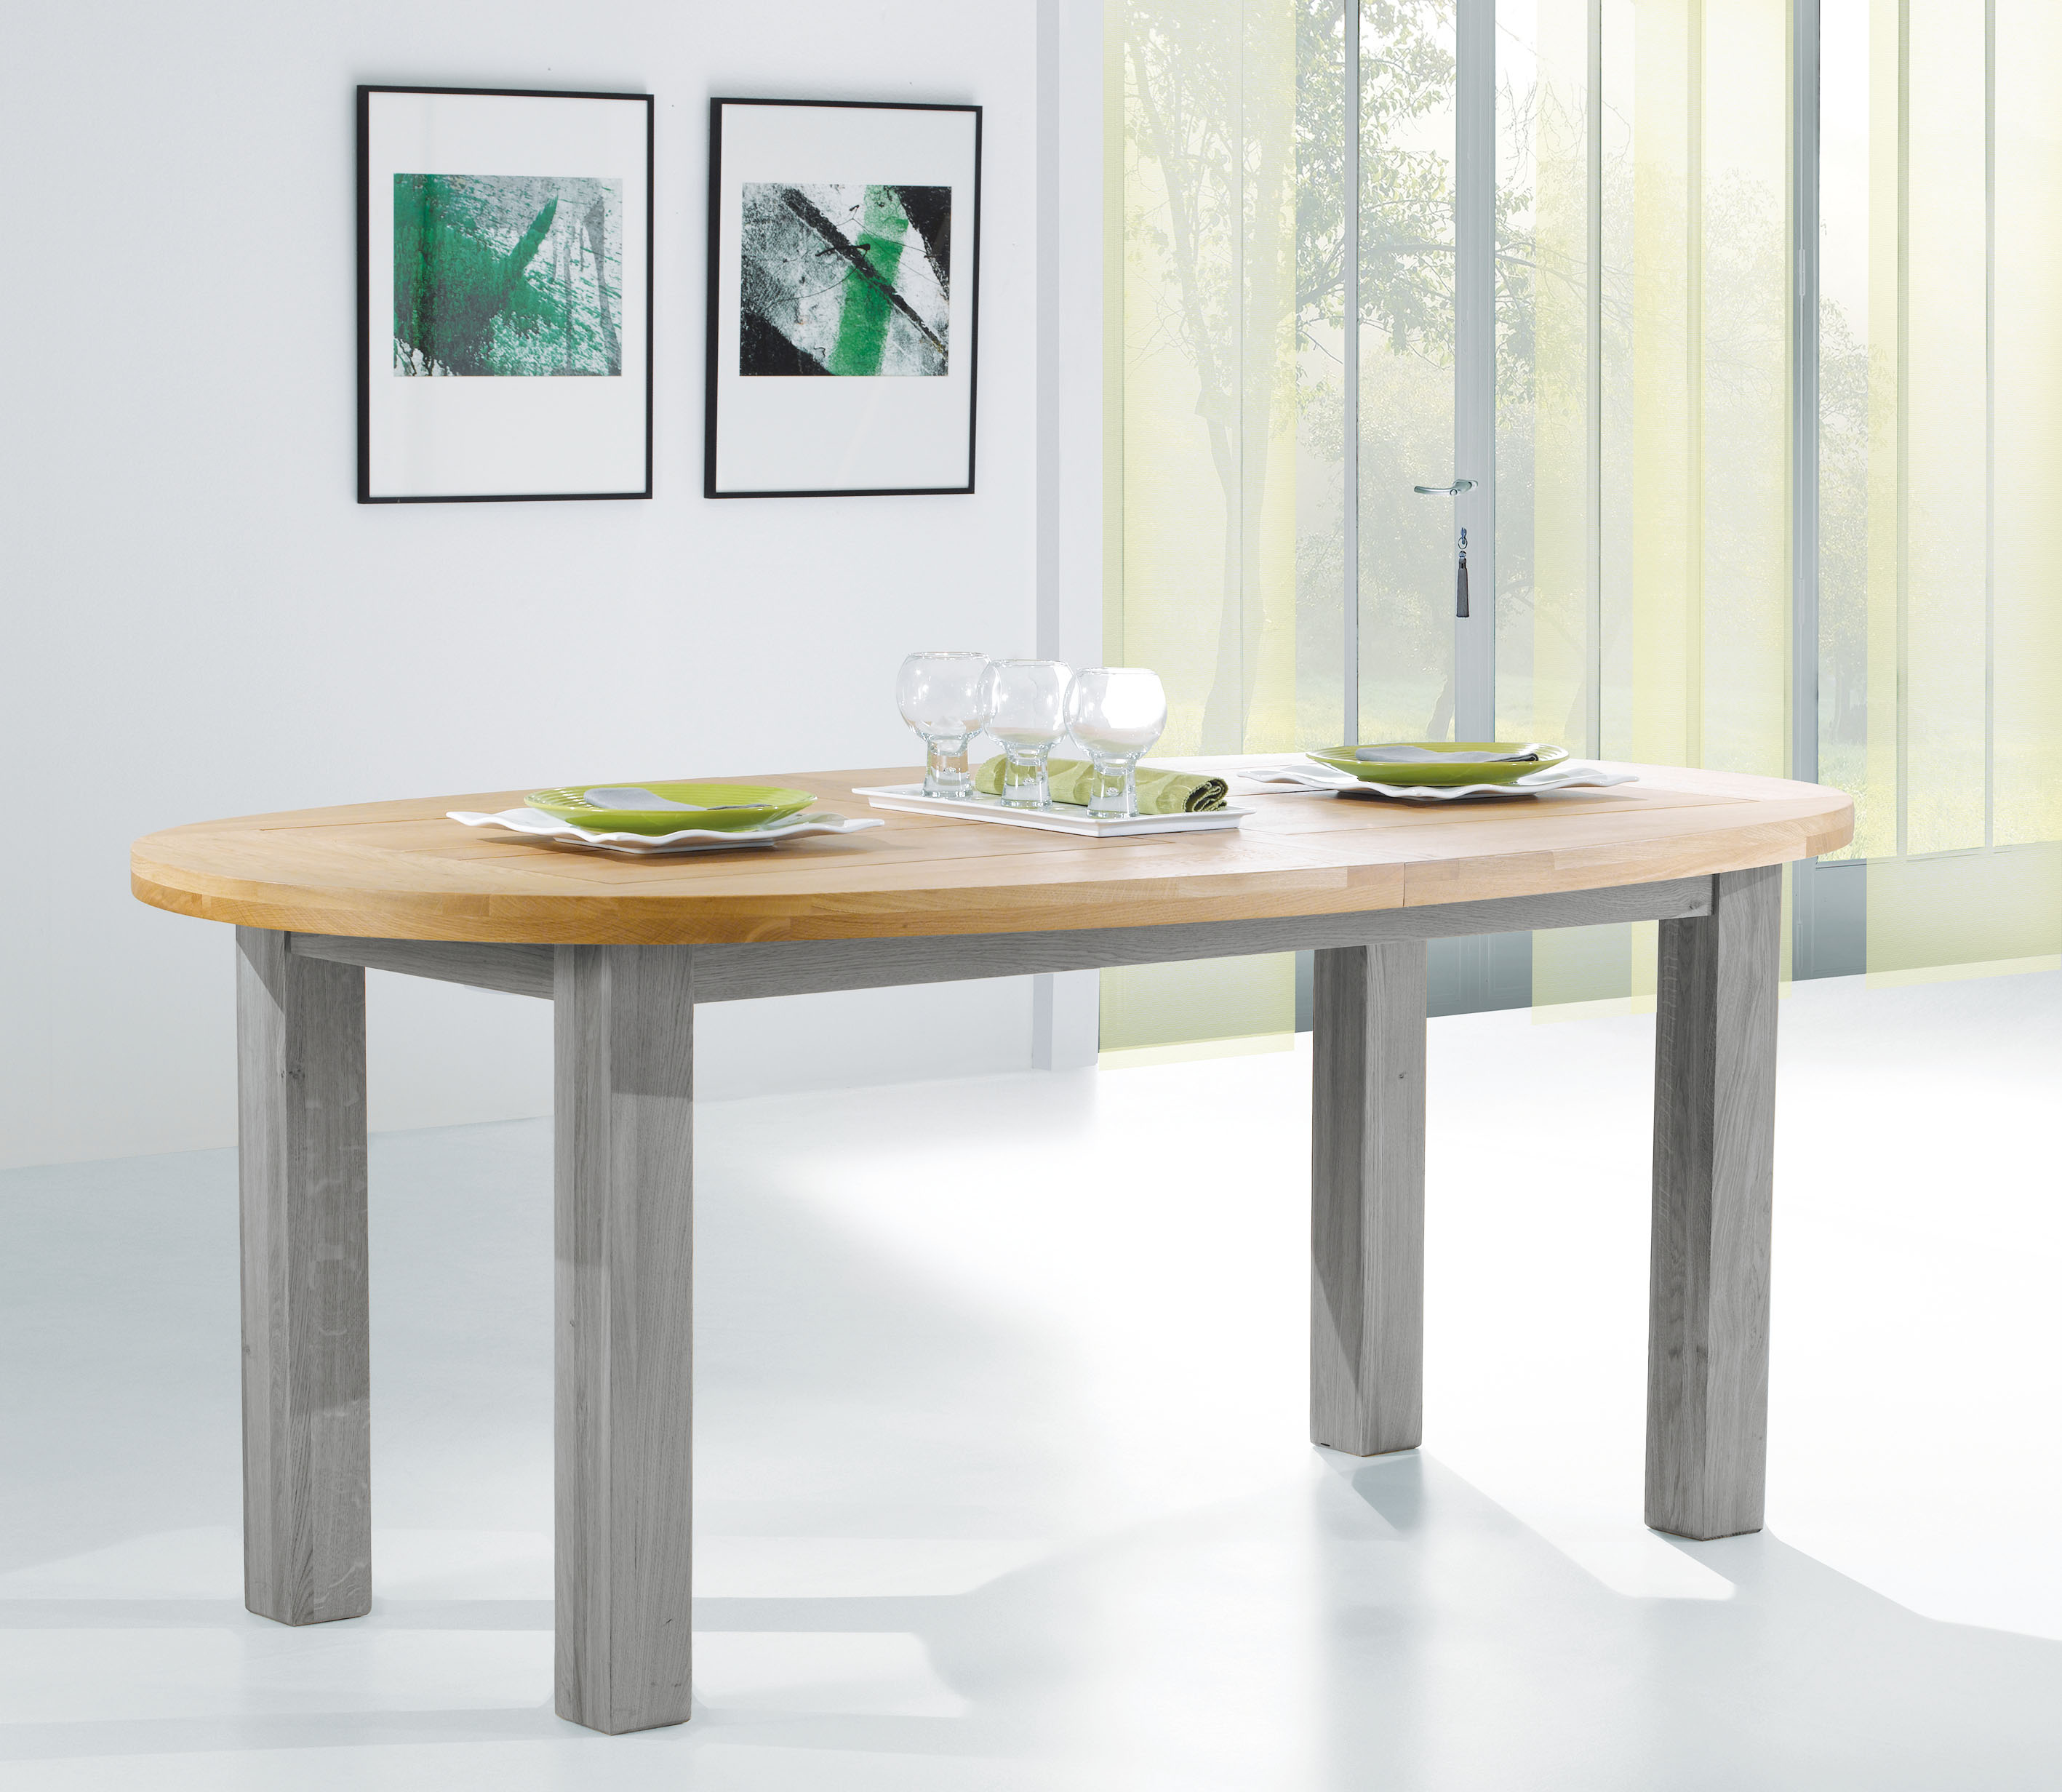 Table ovale whitney romance avec 1 ou 2 allonges 465dp for Table ovale allonge